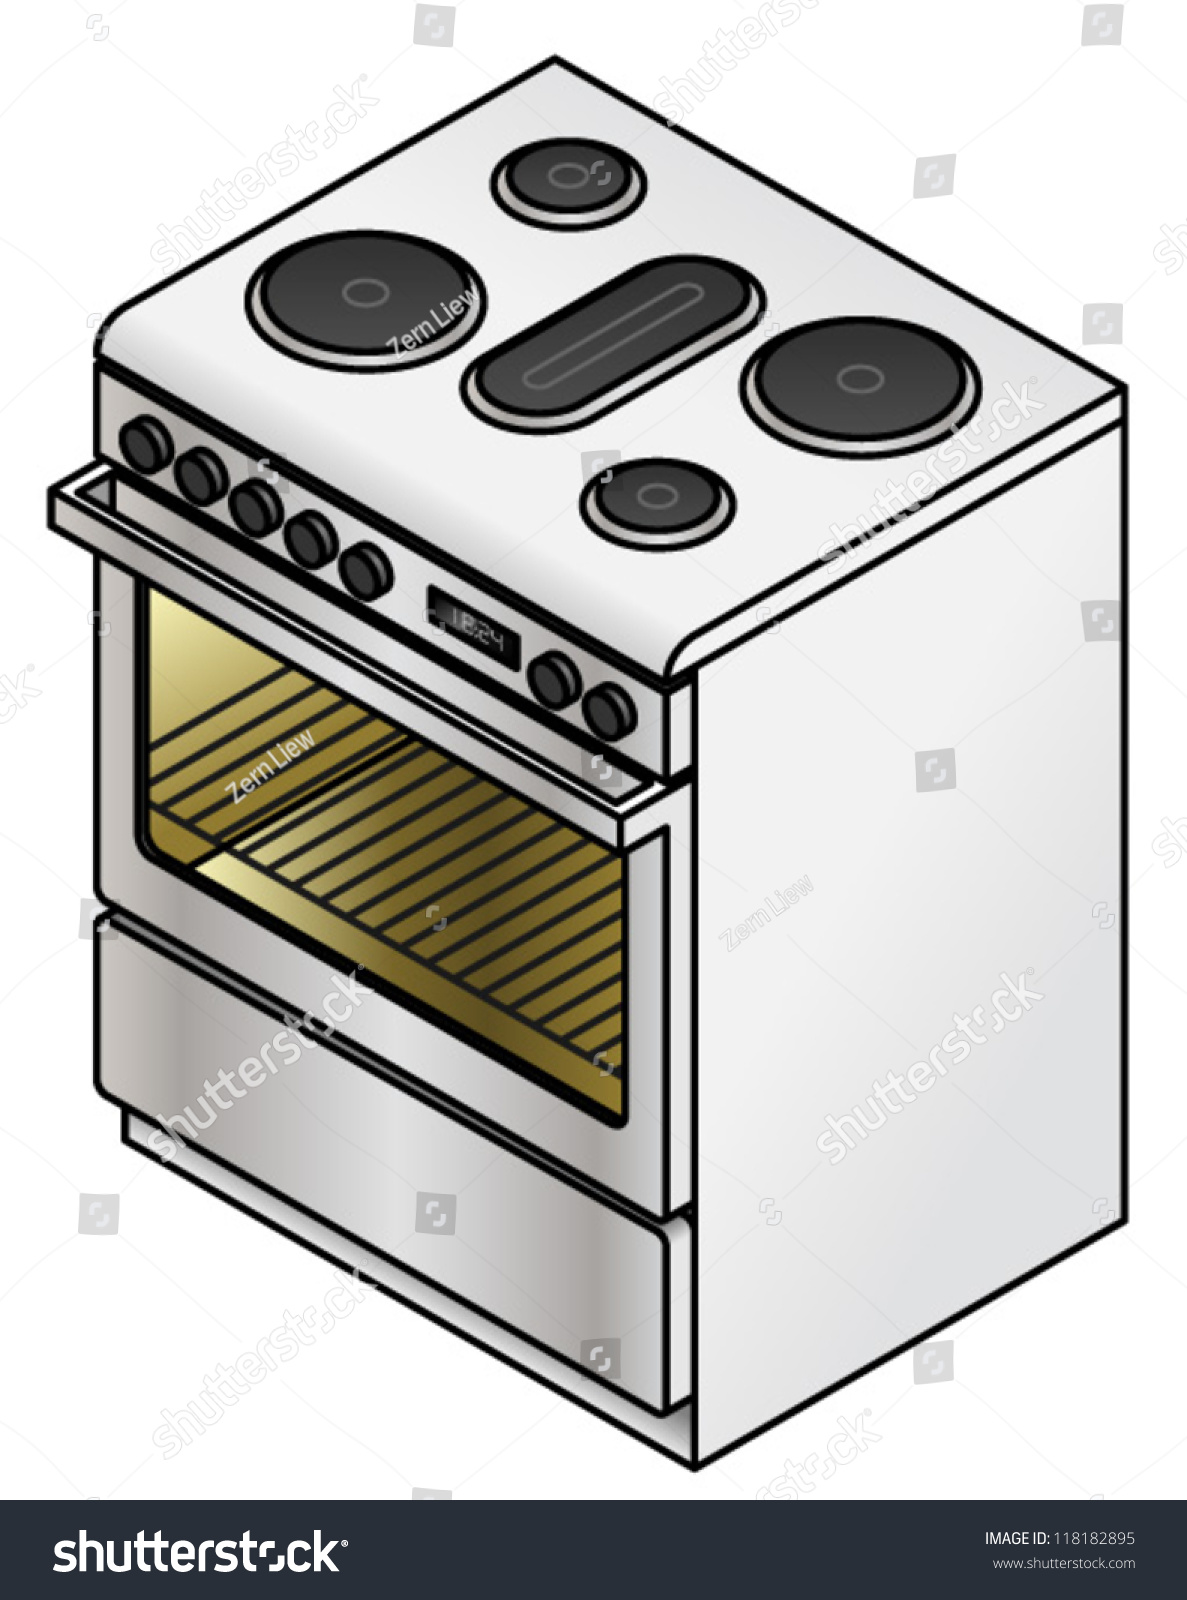 Cartoon Electric Cooker ~ A standalone electric stove with five hot plates oven and